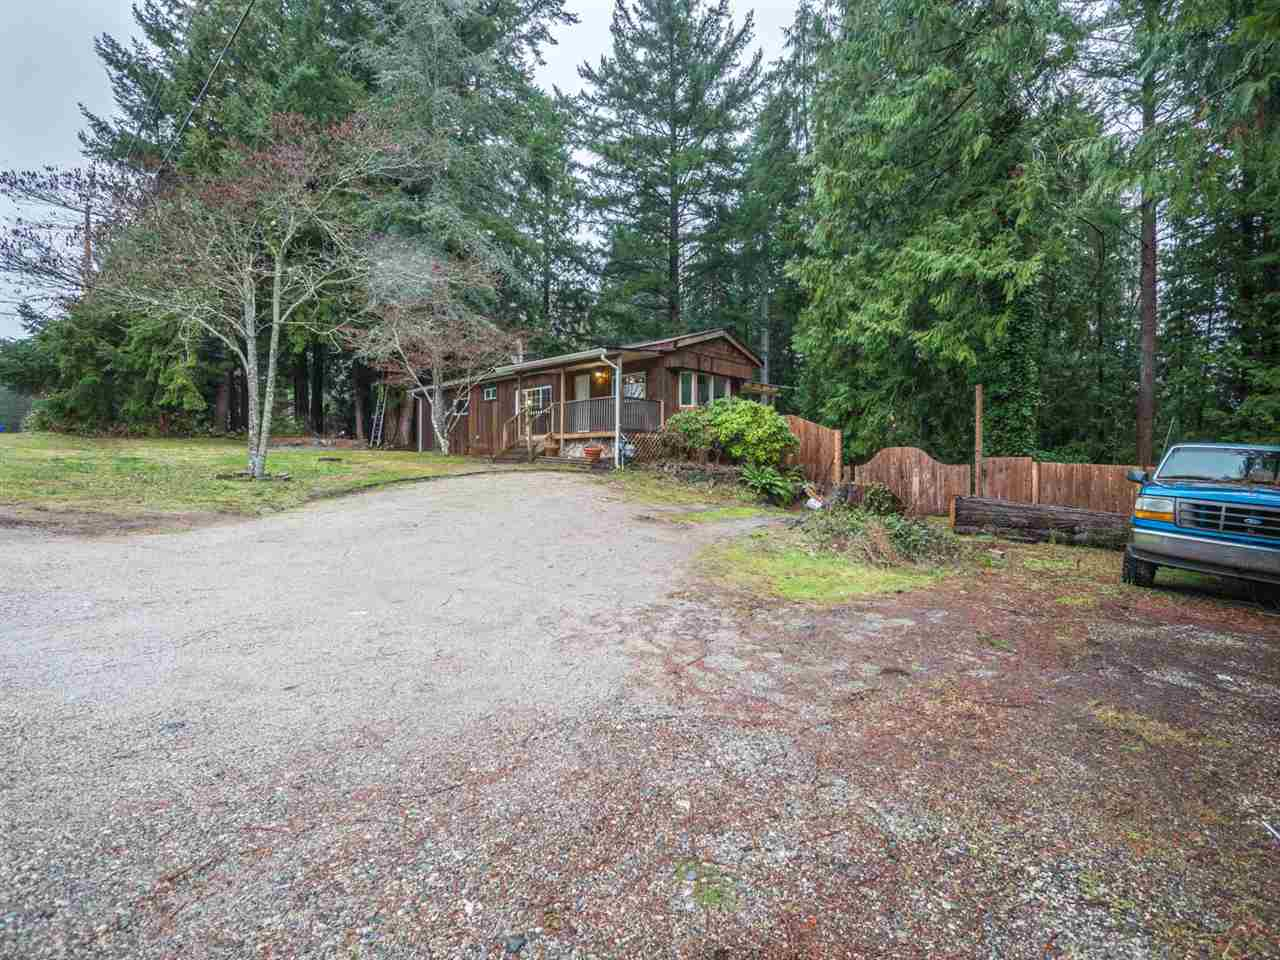 Photo 2: Photos: 5592 WAKEFIELD Road in Sechelt: Sechelt District Manufactured Home for sale (Sunshine Coast)  : MLS® # R2230720